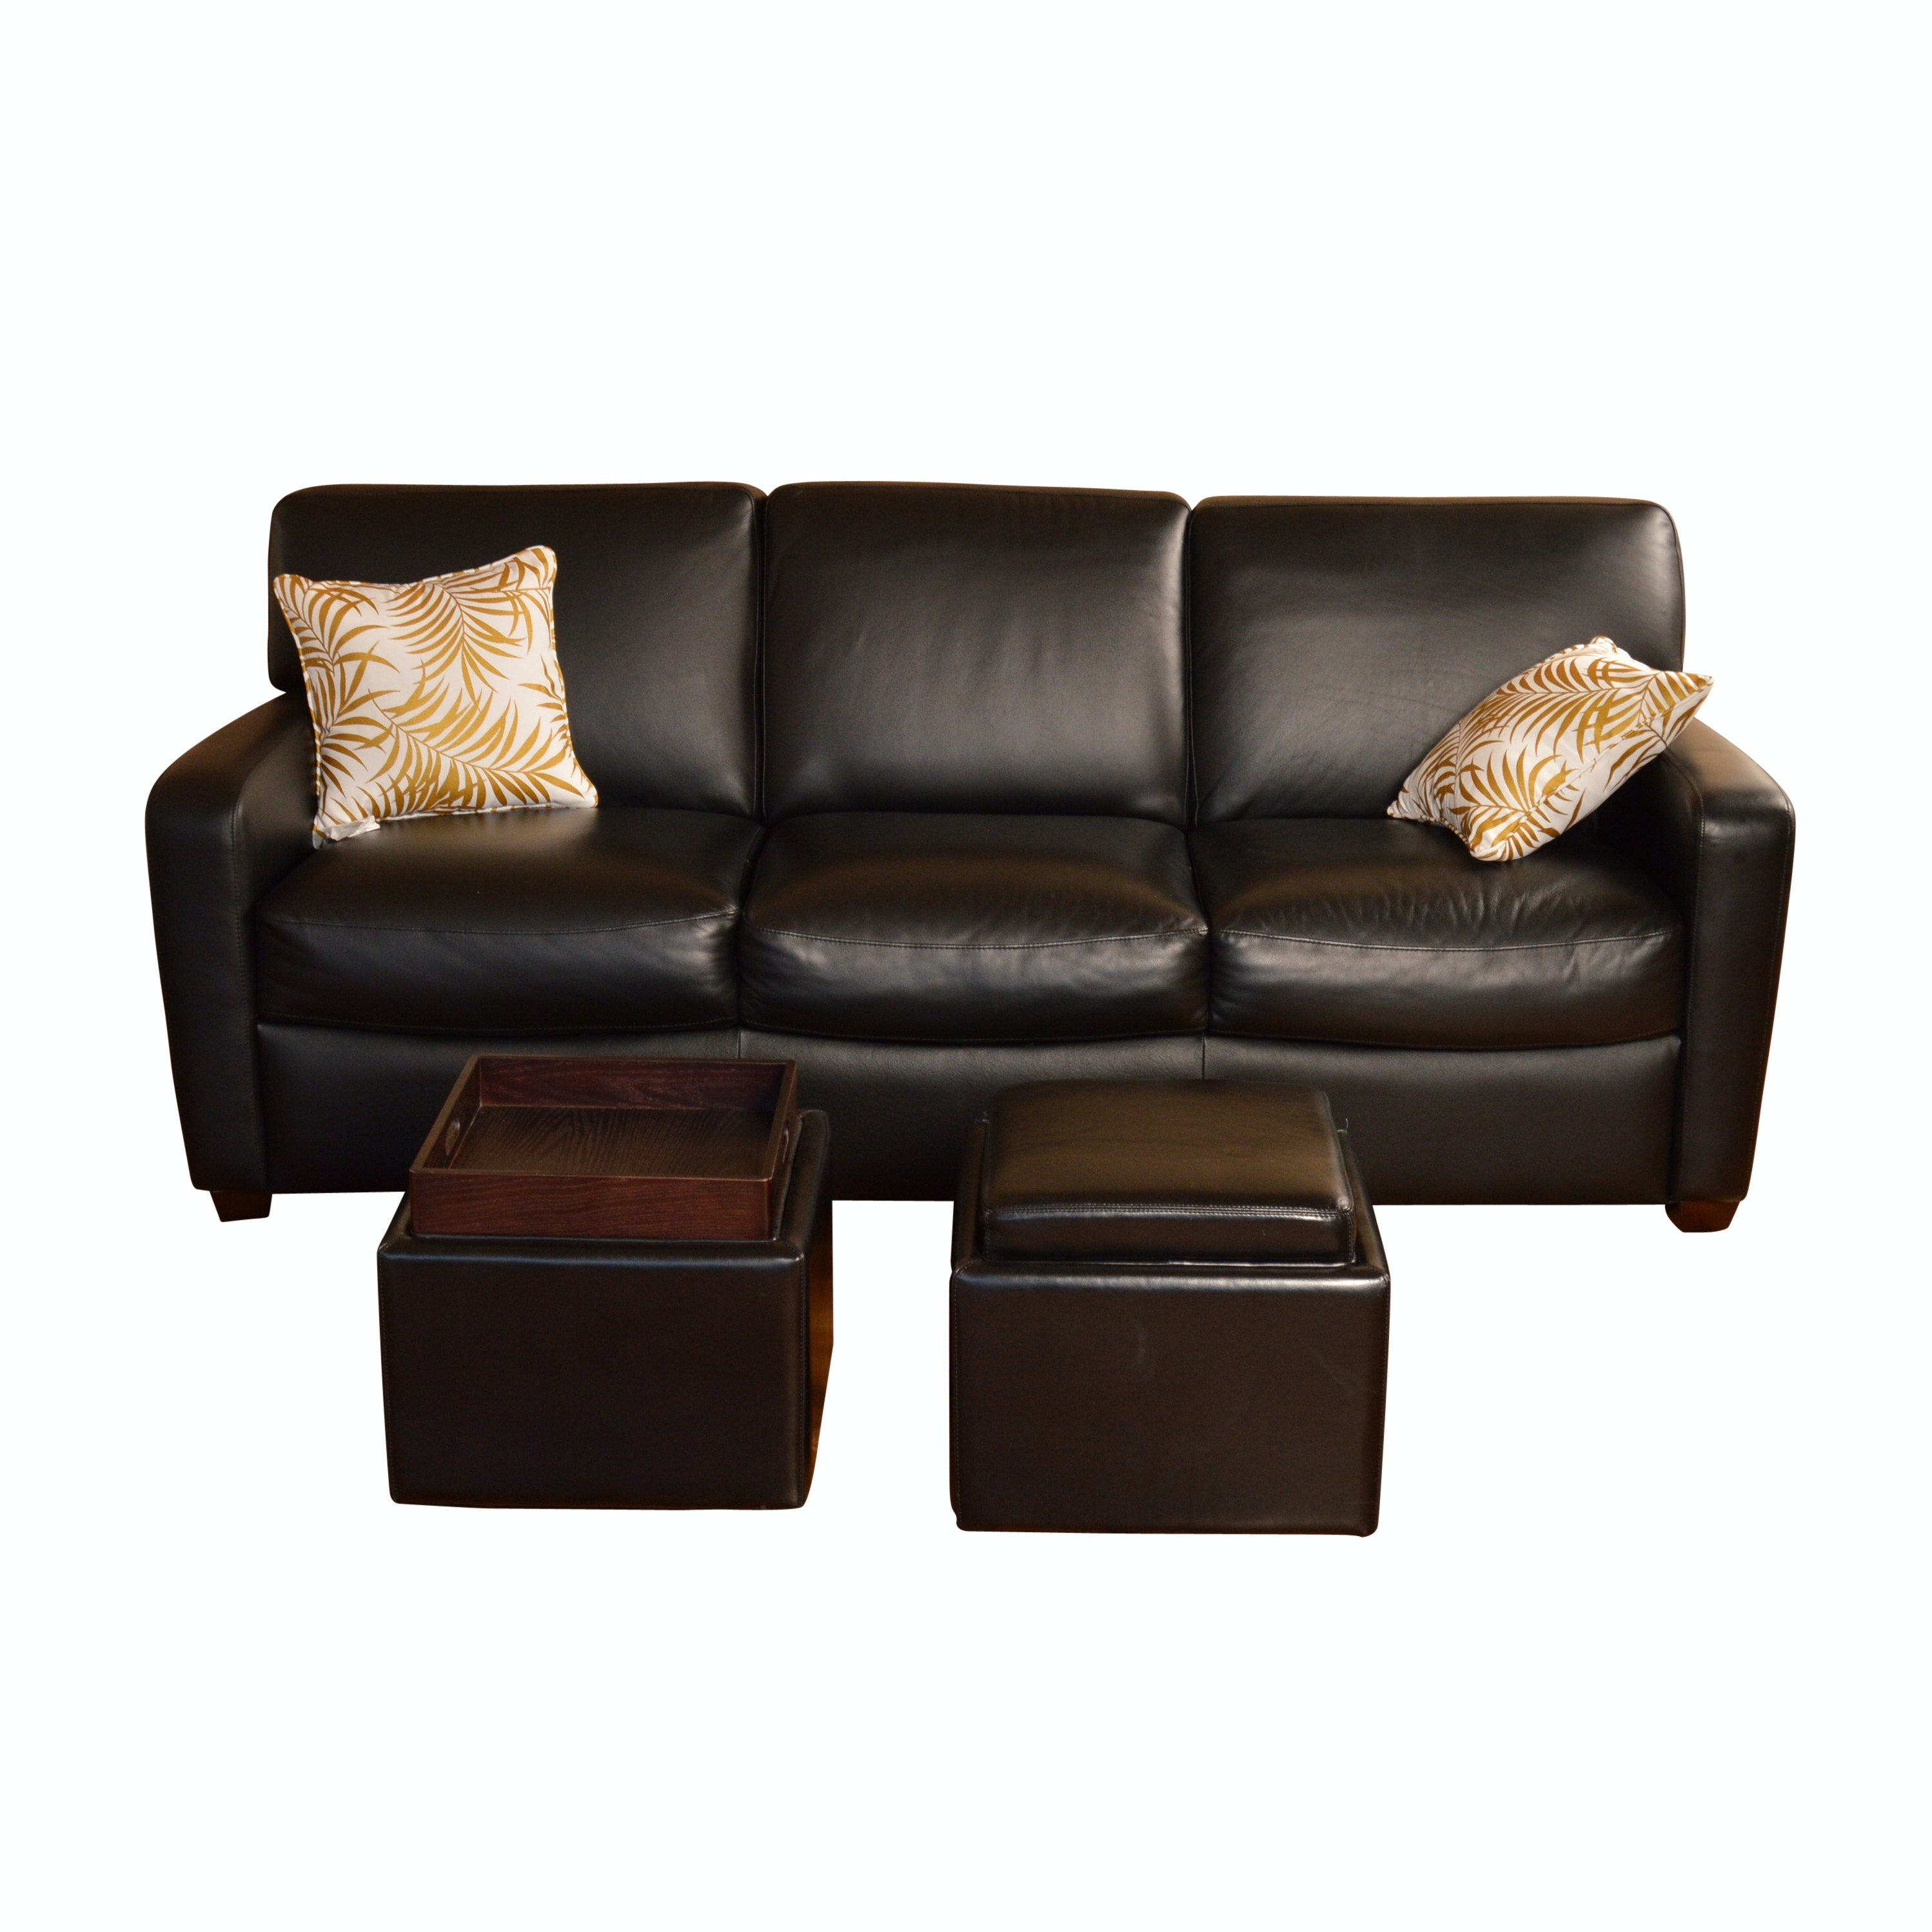 Black Leather Sofa and Ottomans